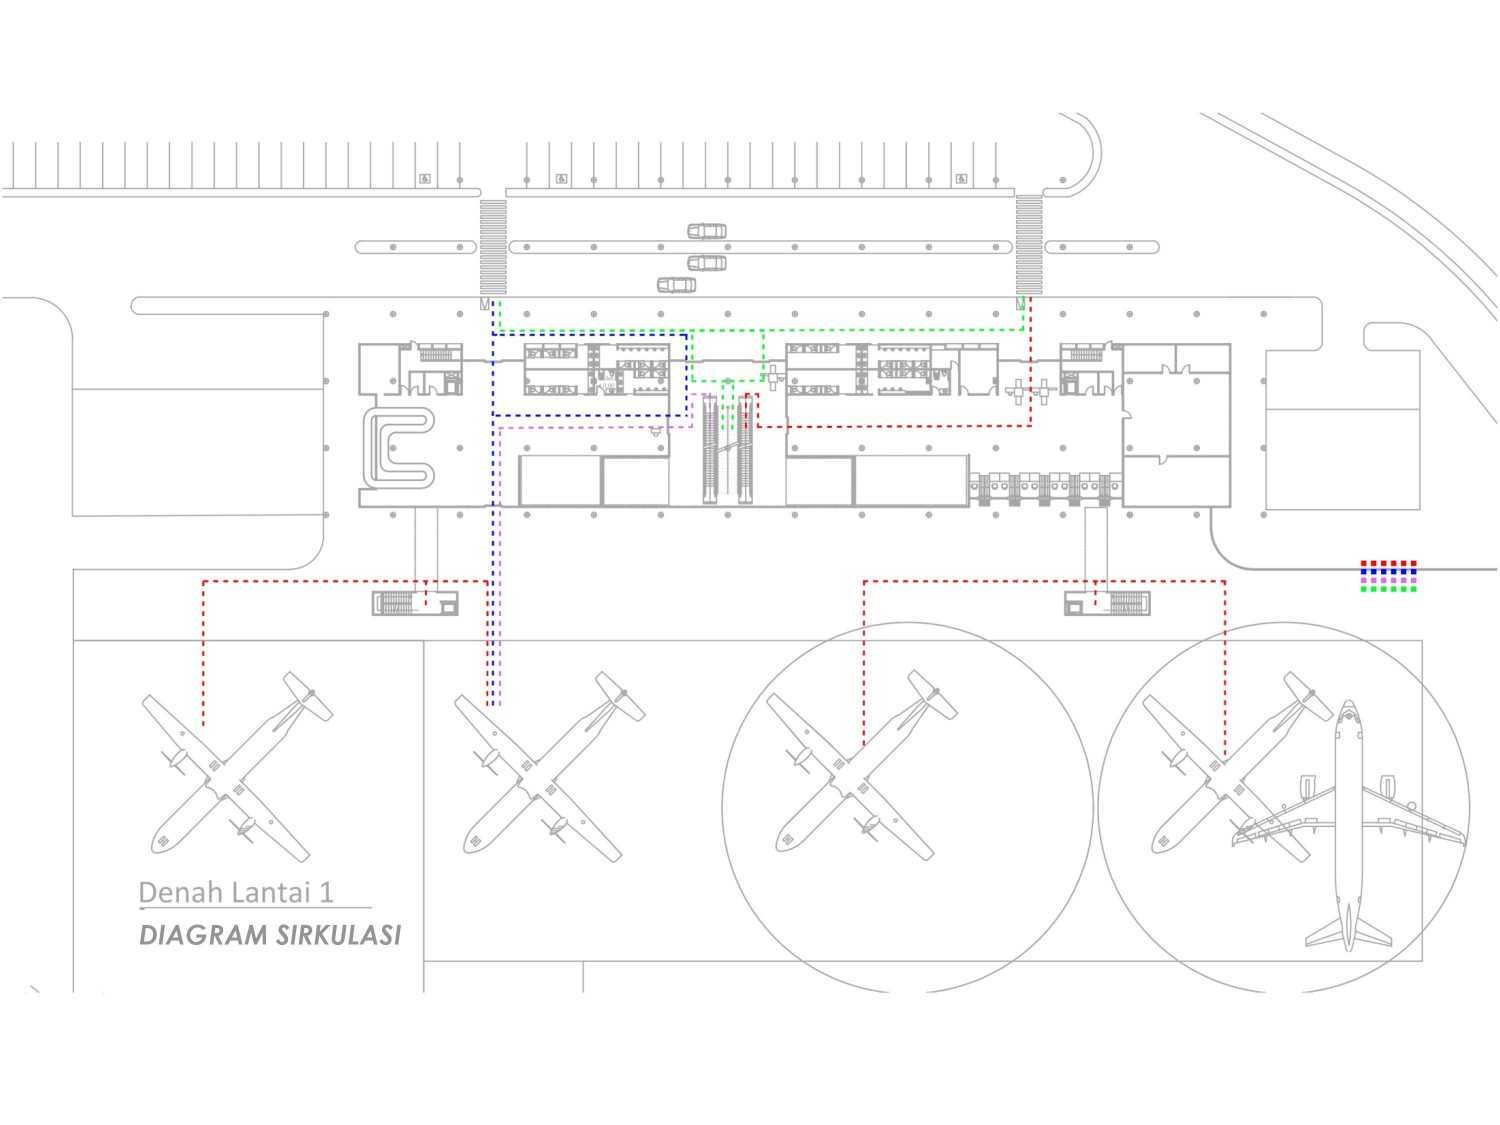 Monokroma Architect Mali Alor Airport  Alor, Ntt Alor, Ntt 12-Circulation-Diagram Kontemporer 14823